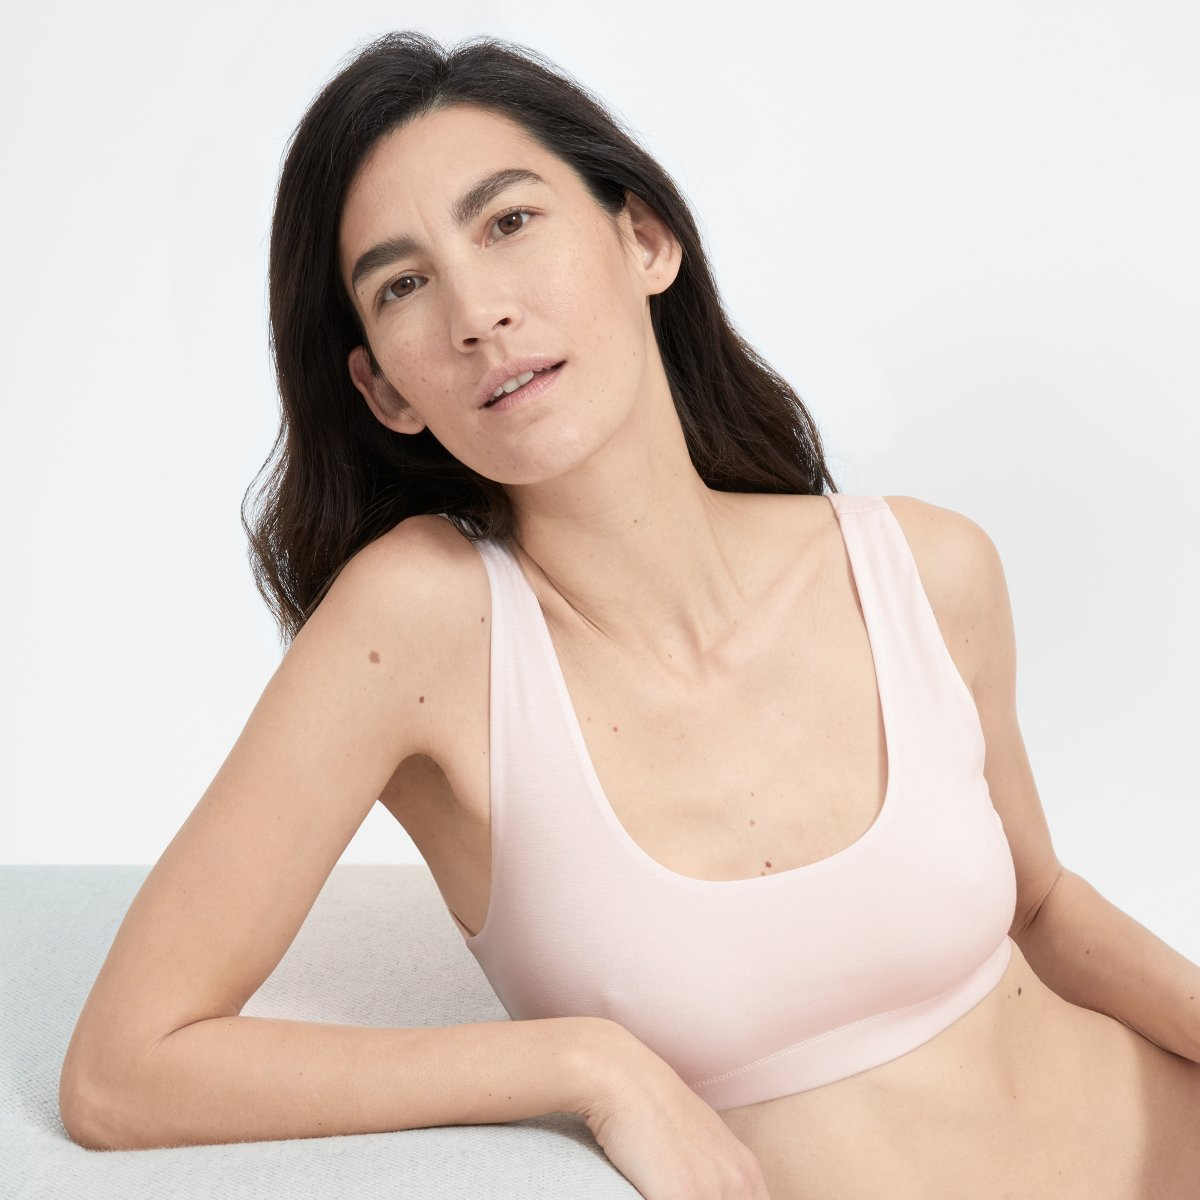 Woman modeling a pink Everlane The Tank Bra